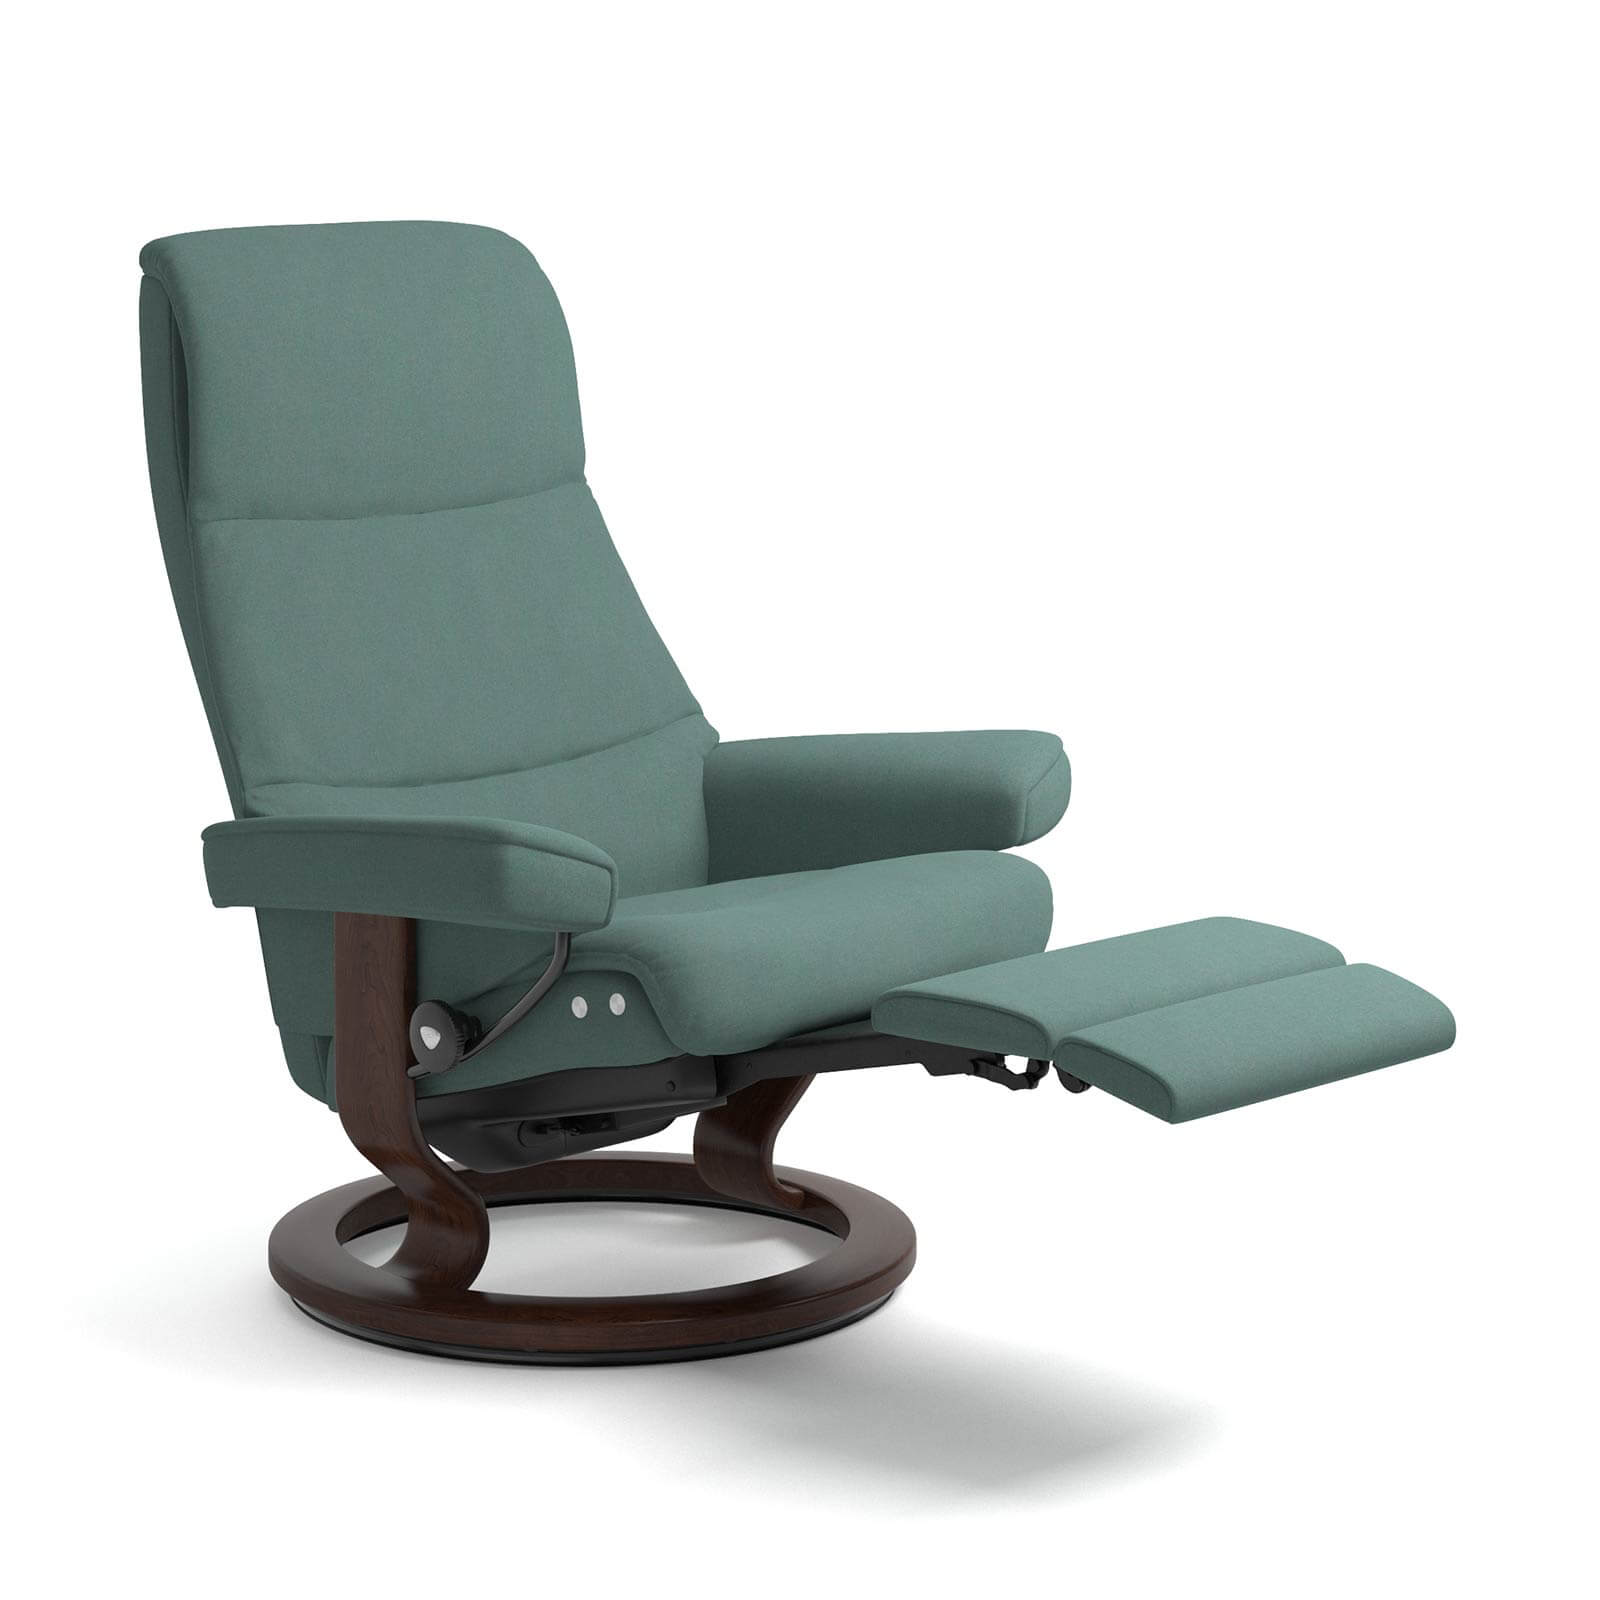 Stressless Sessel Höffner Stressless Sessel View Legcomfort Calido Aqua Stressless